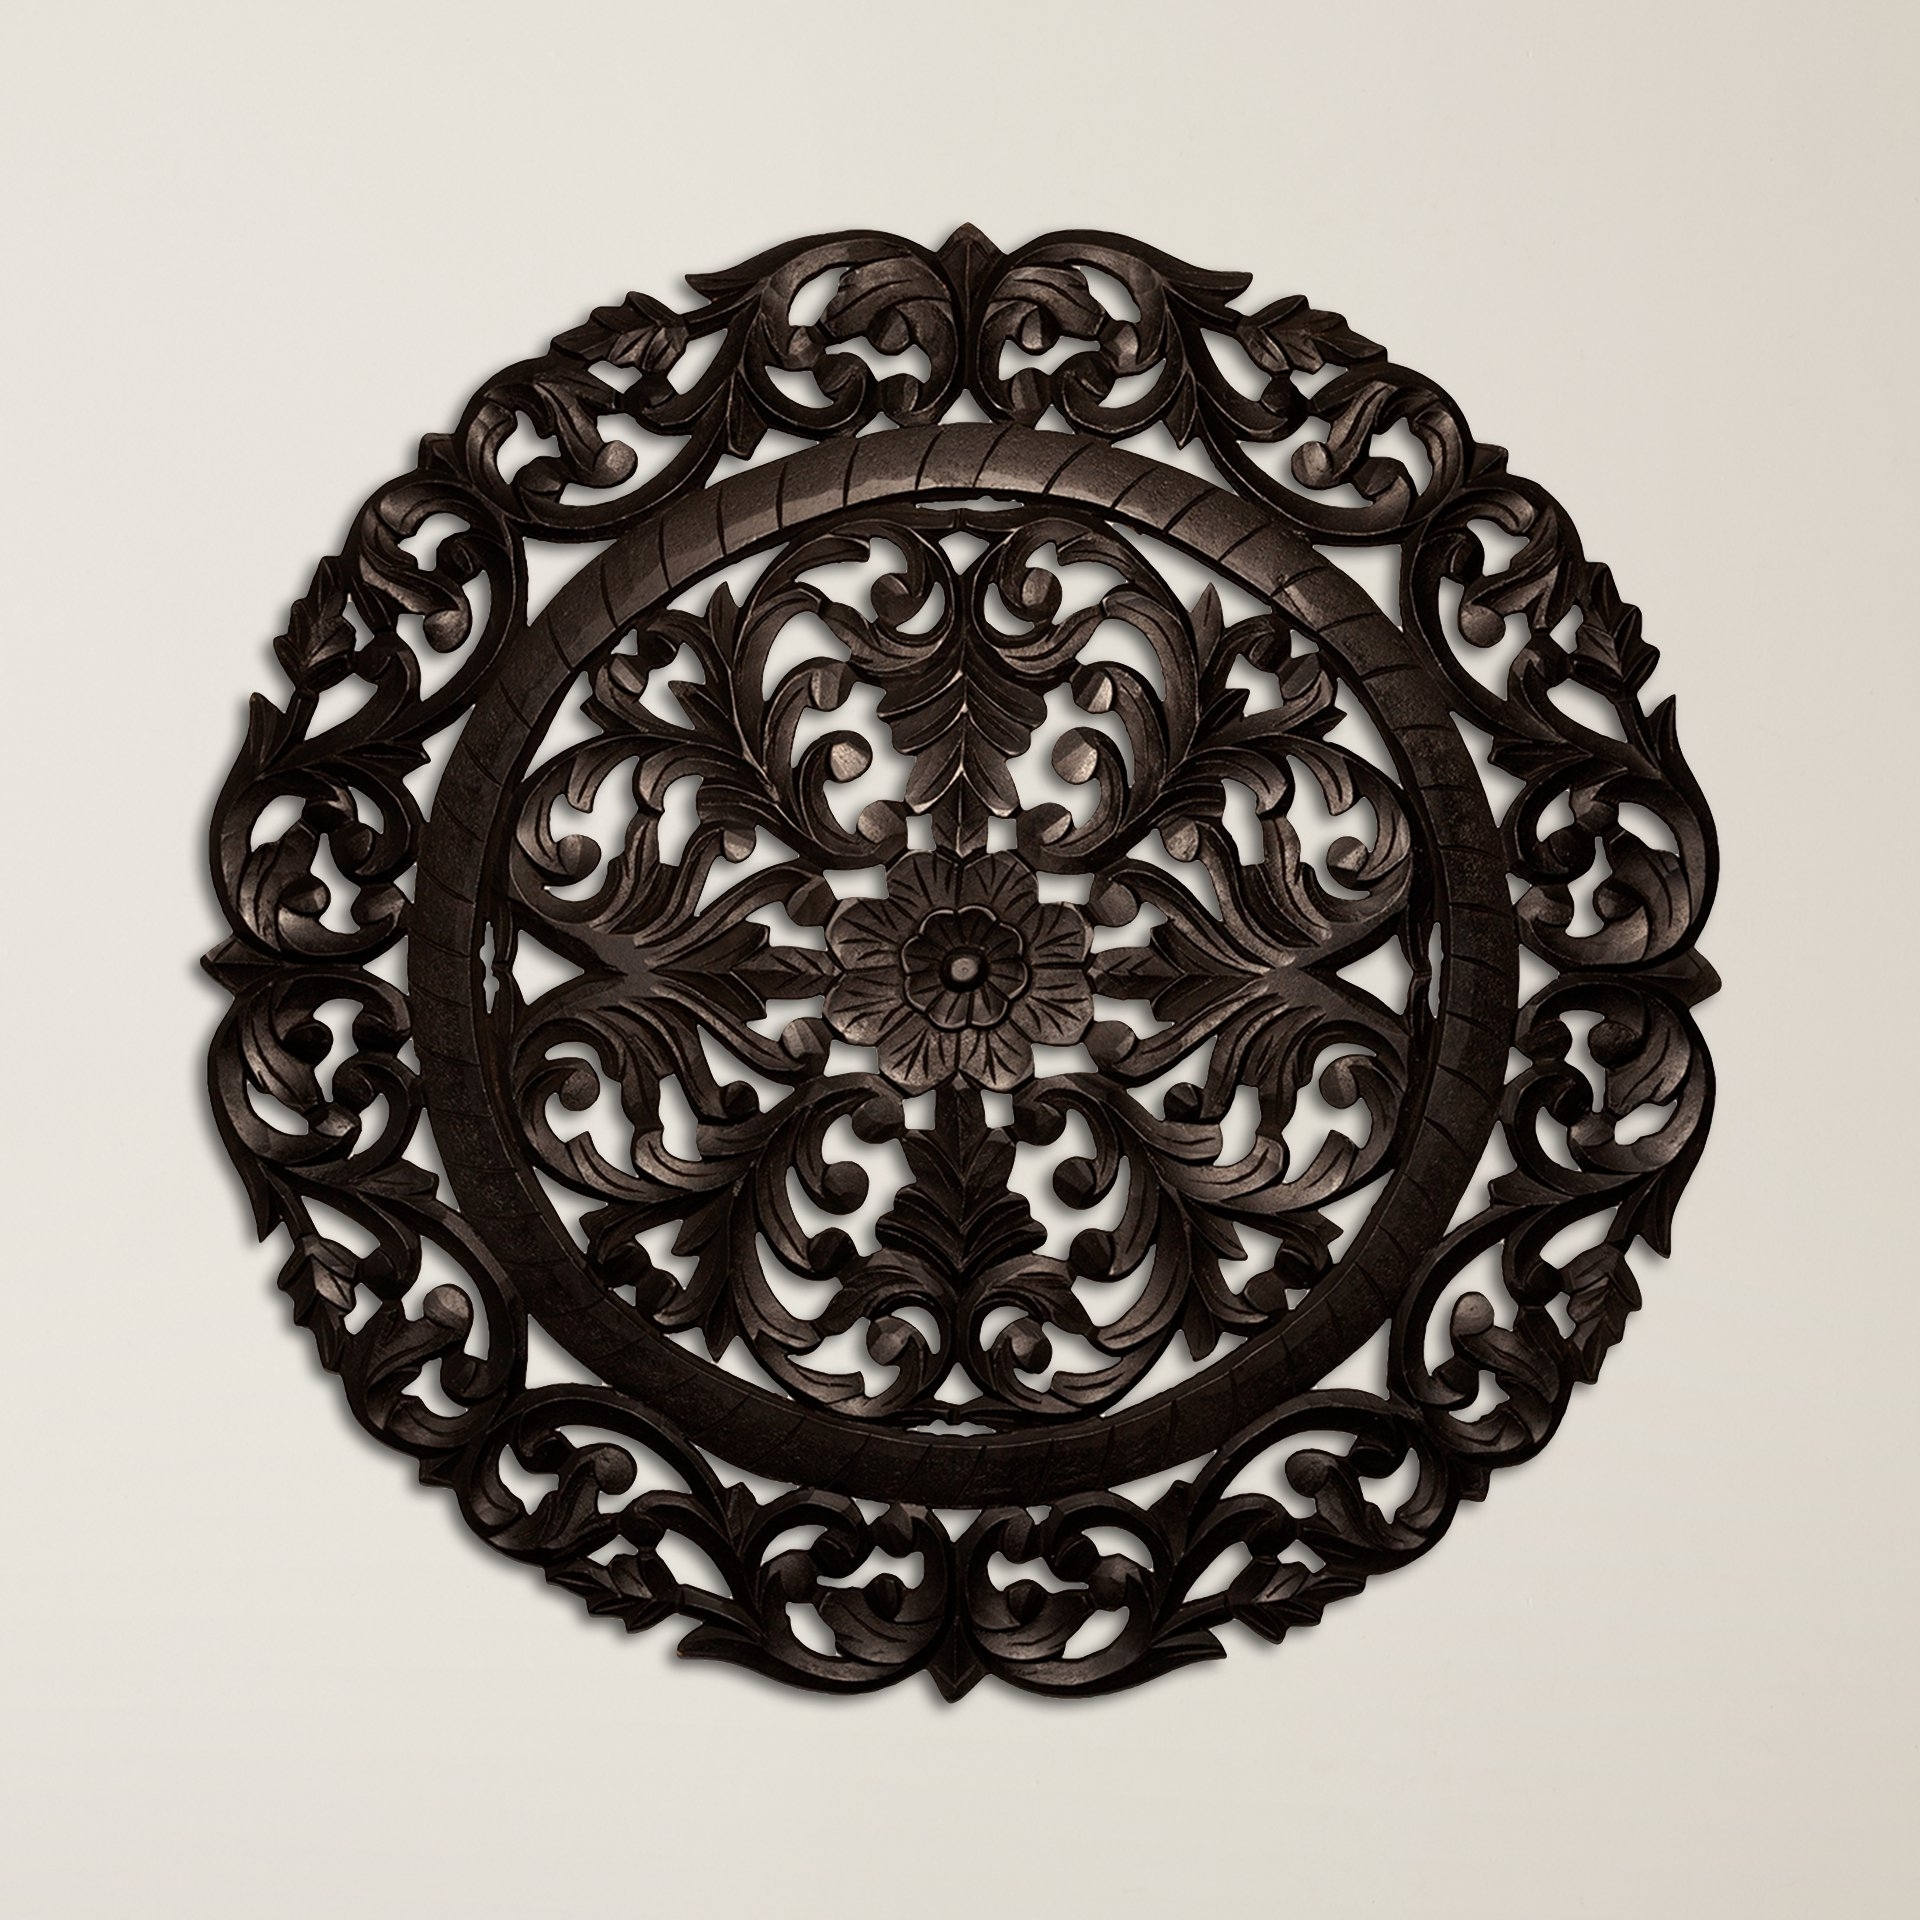 Round Medallion Wall Art Wooden Plate Design Ideas Outdoor – Awesome For Famous Wood Medallion Wall Art (Gallery 7 of 20)